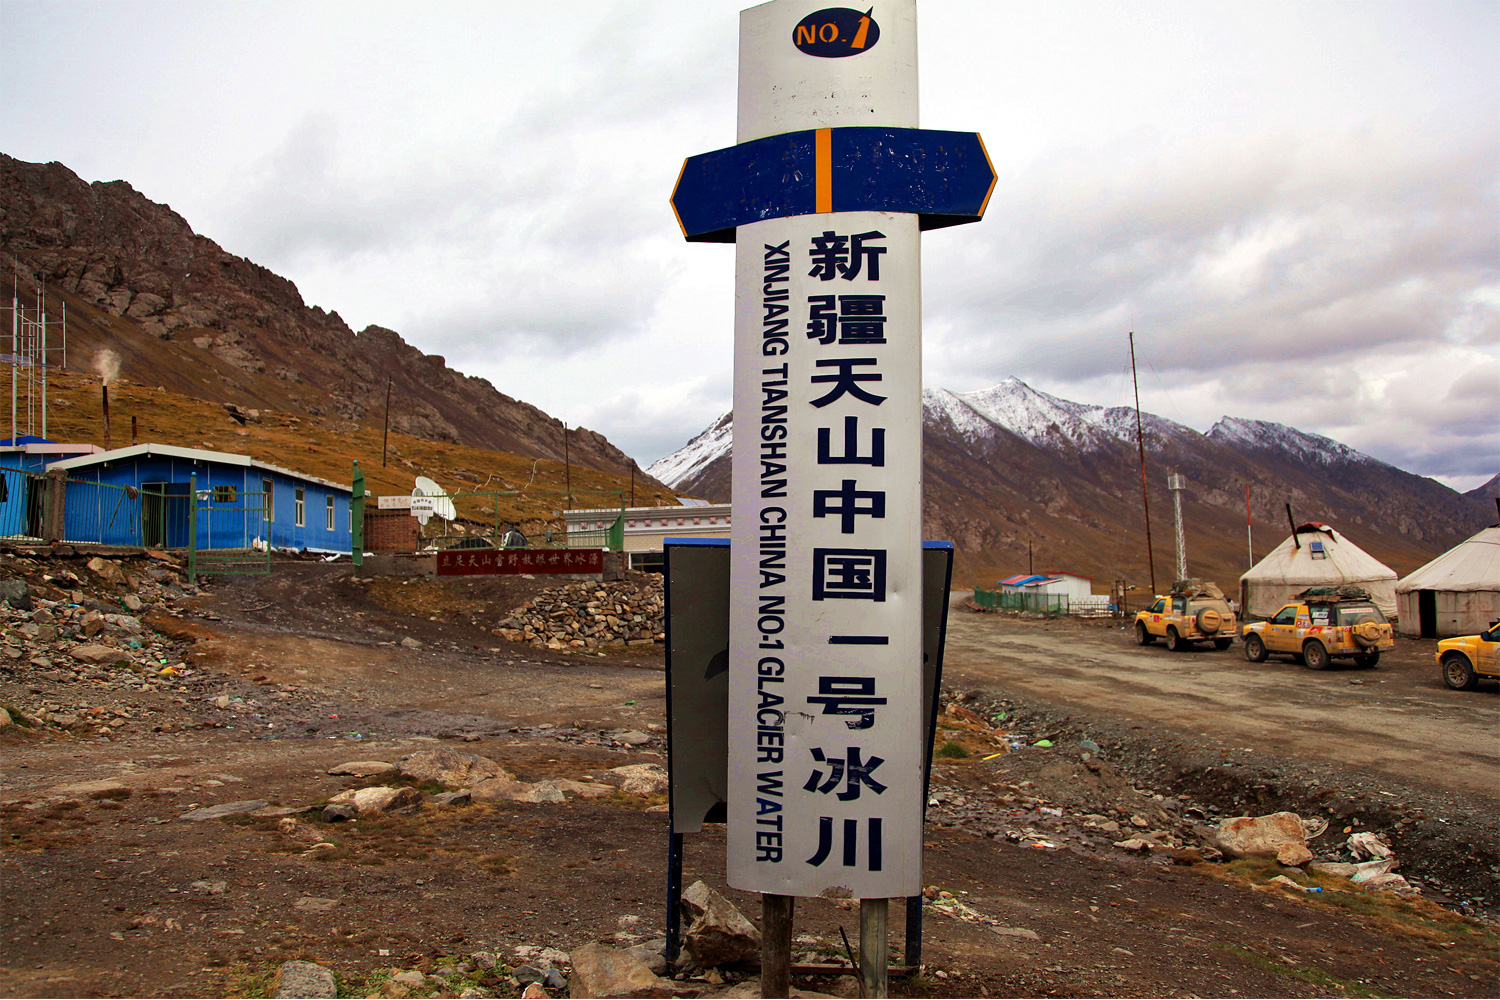 A monitoring station at the Tian Shan No. 1 Glacier. Photo by Yang Yong.